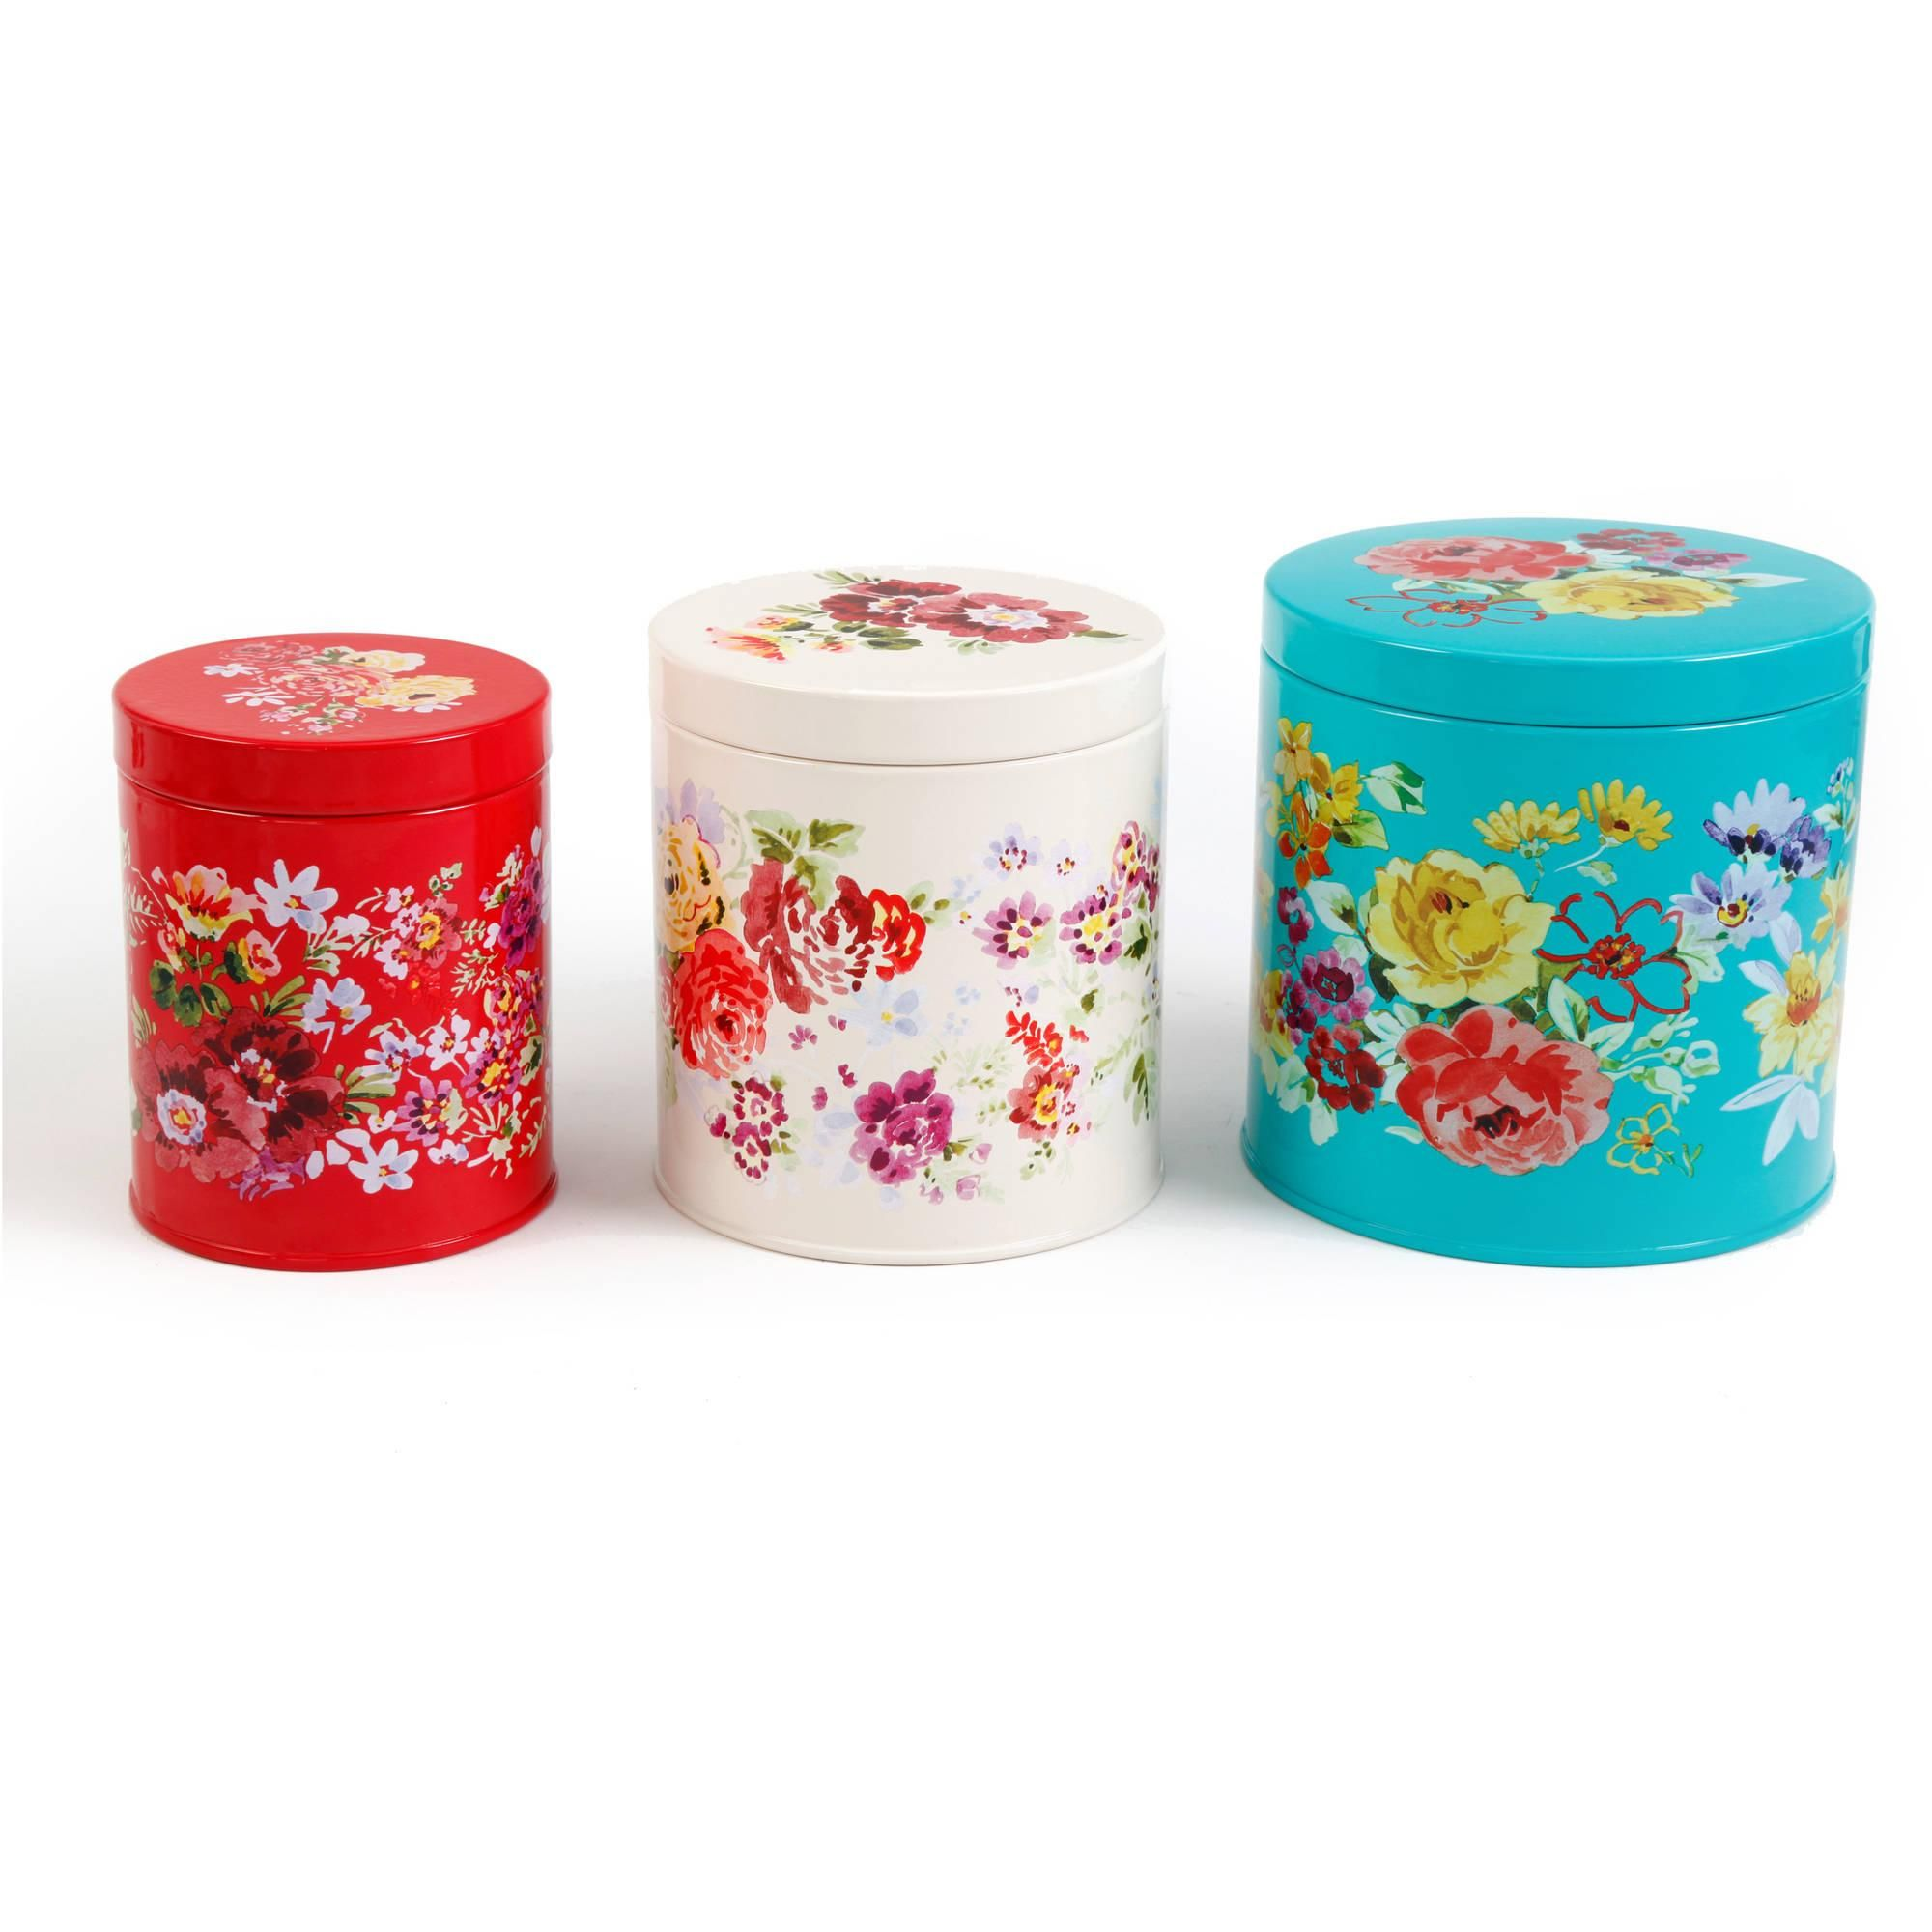 the pioneer woman garden meadow 3 piece tin canister set walmart